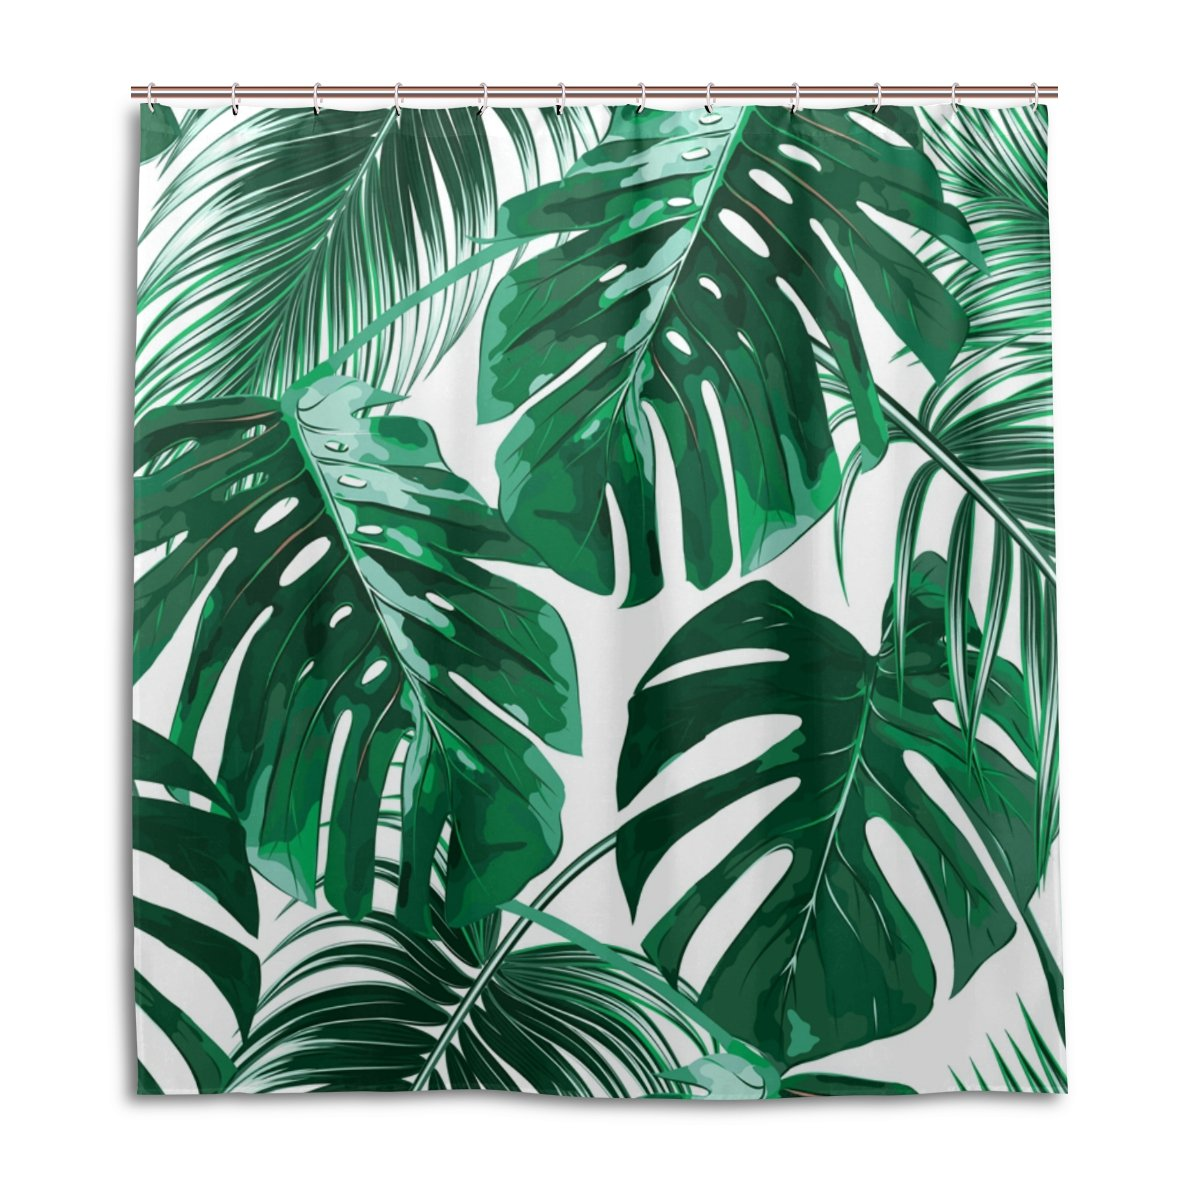 WellLee Fashion Custom Tropical Palm Leaves Jungle Shower Curtain Waterproof Fabric Bathroom Decor 66 x 72 inch with Hooks YL-66X72-001